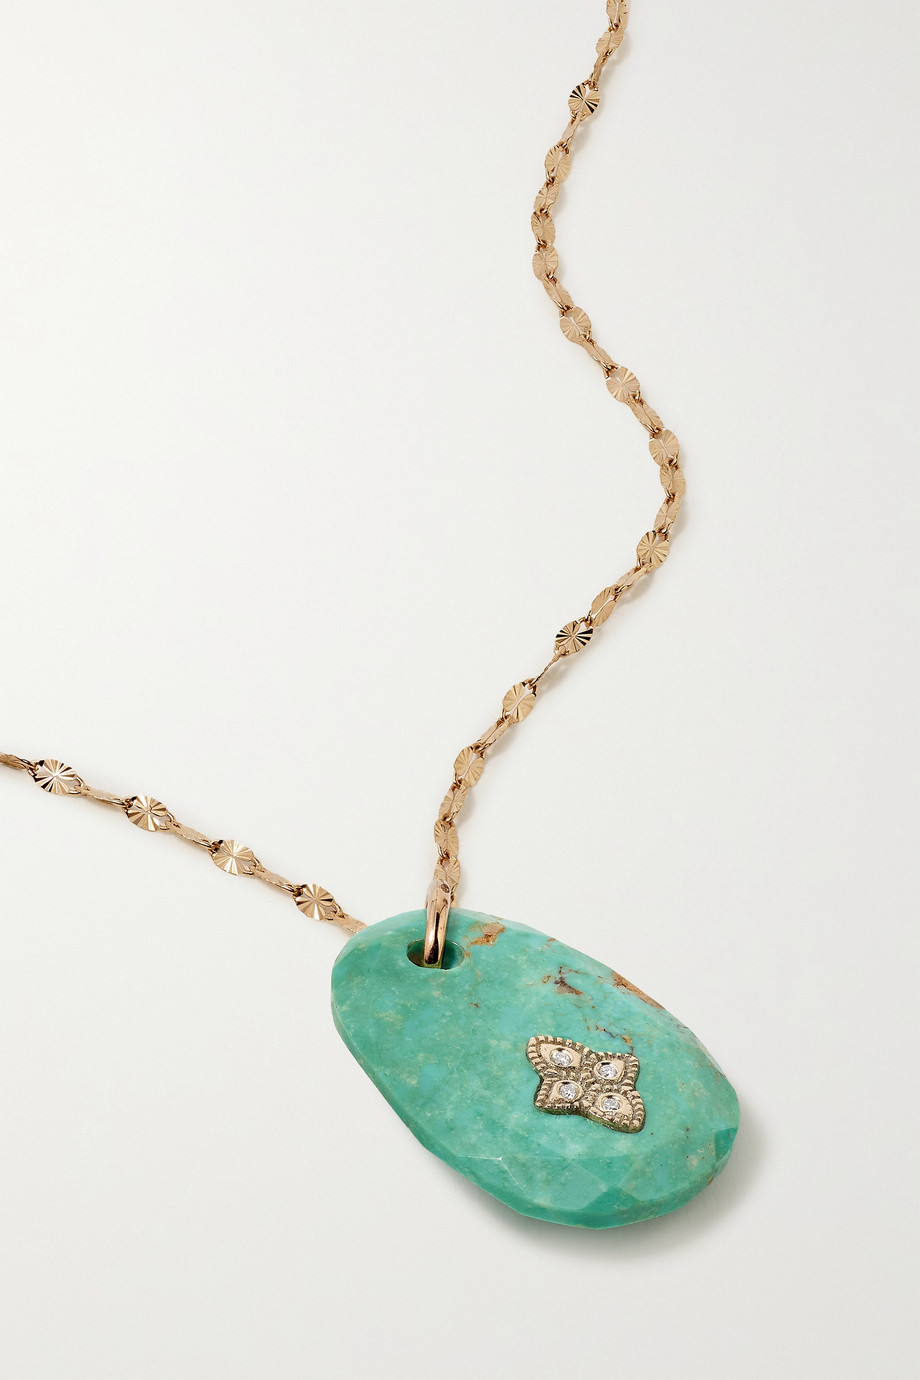 Pascale Monvoisin Gaia N°1 9 and 14-karat gold, turquoise and diamond necklace